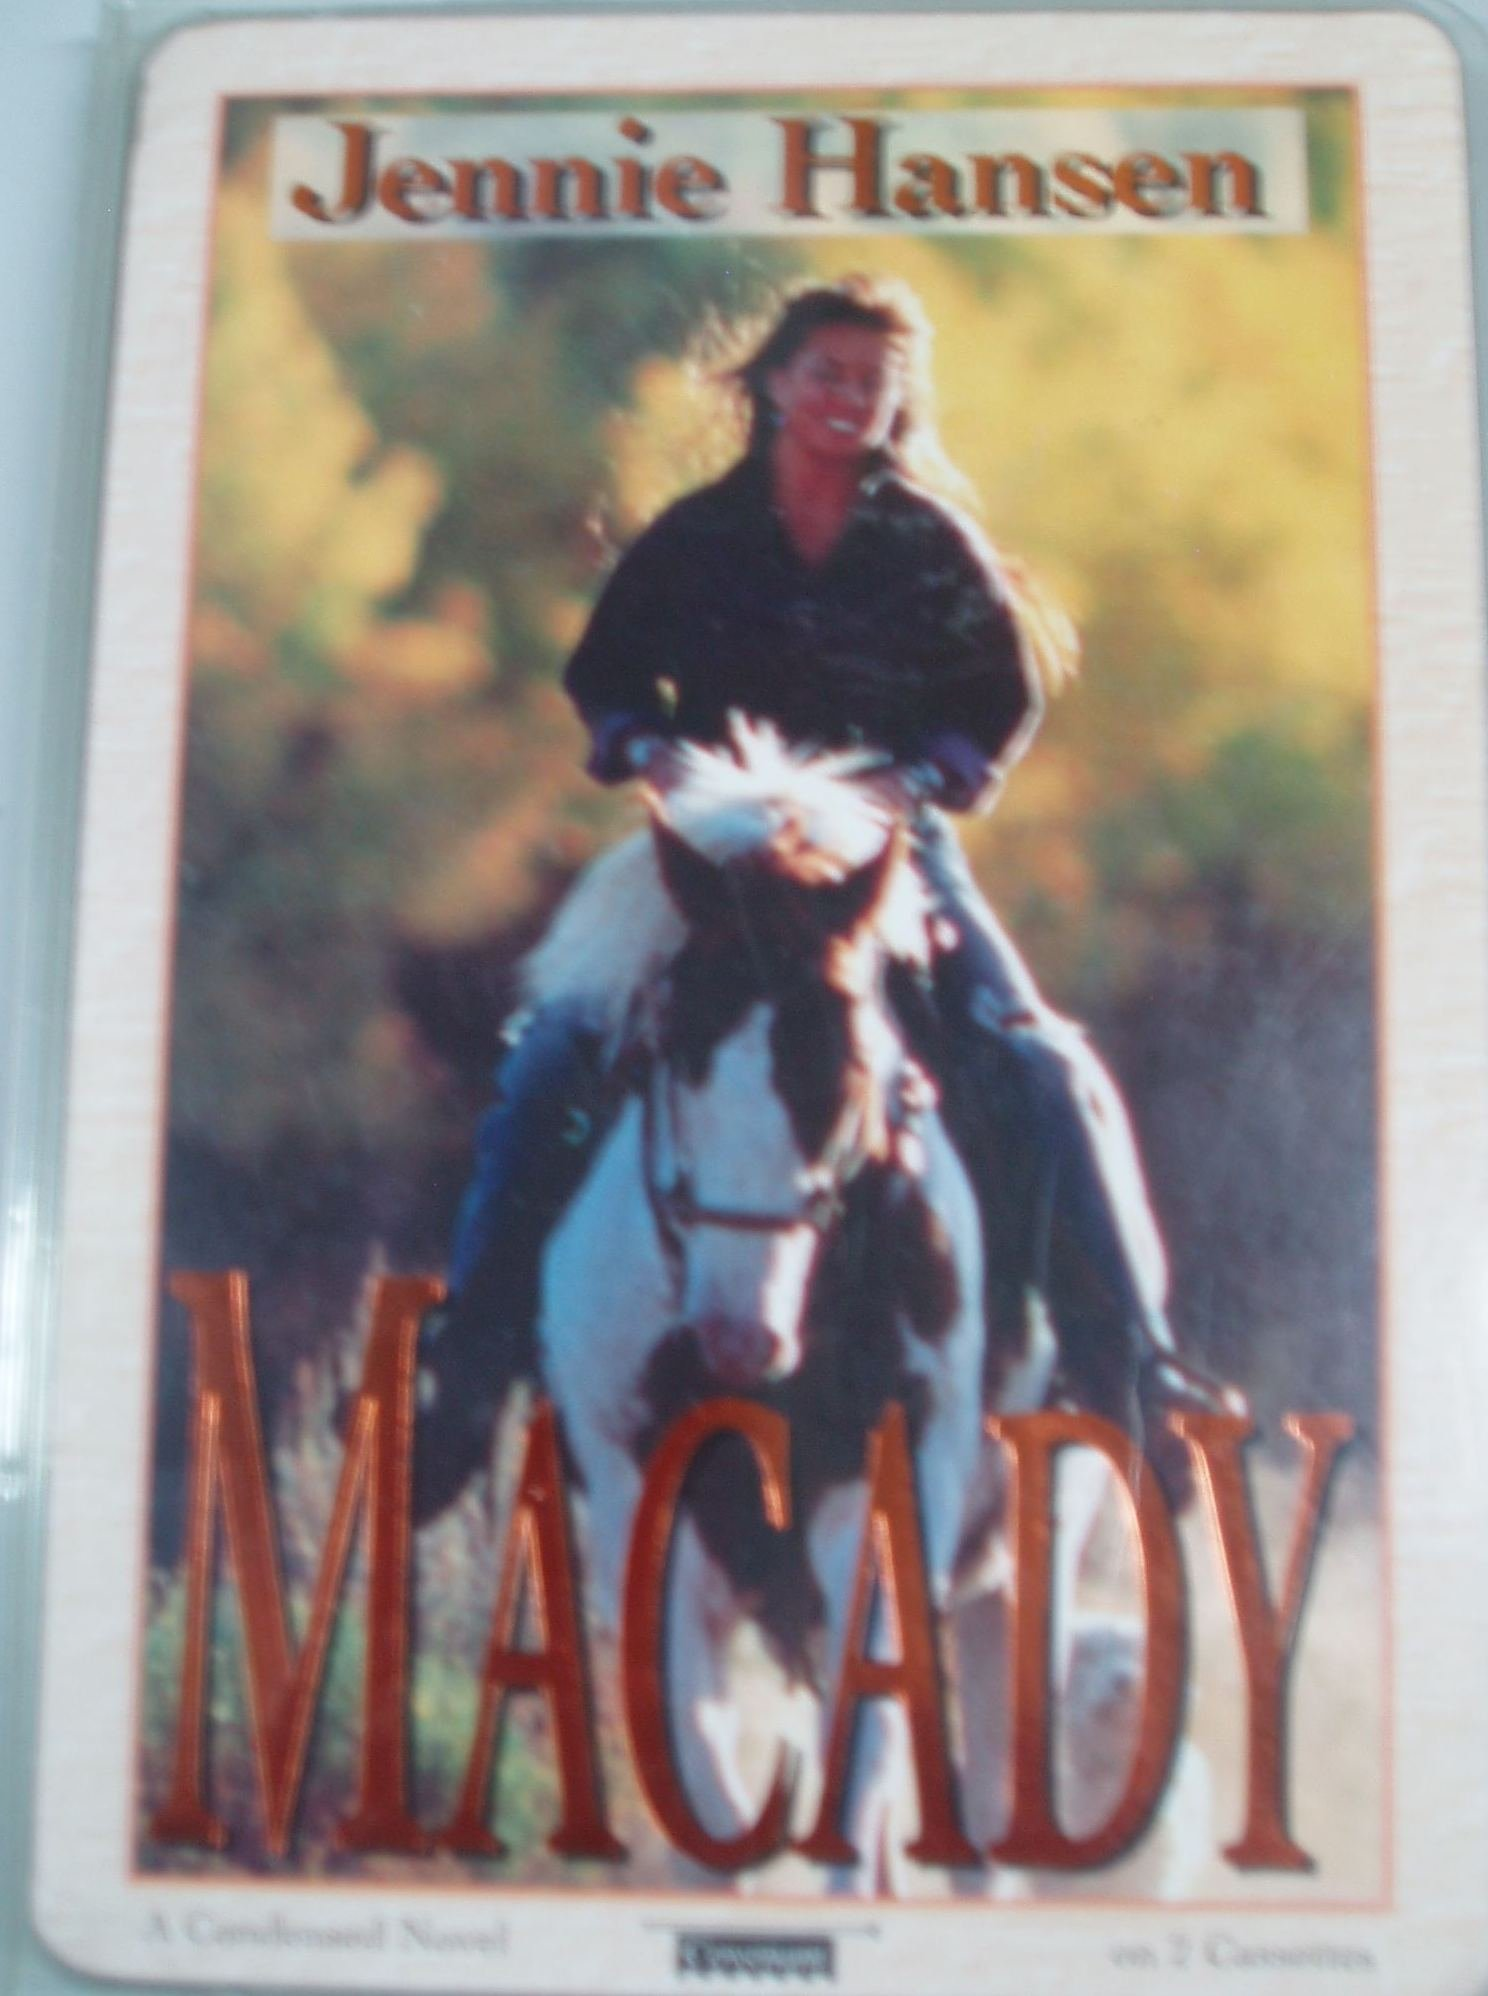 Even more about Macady